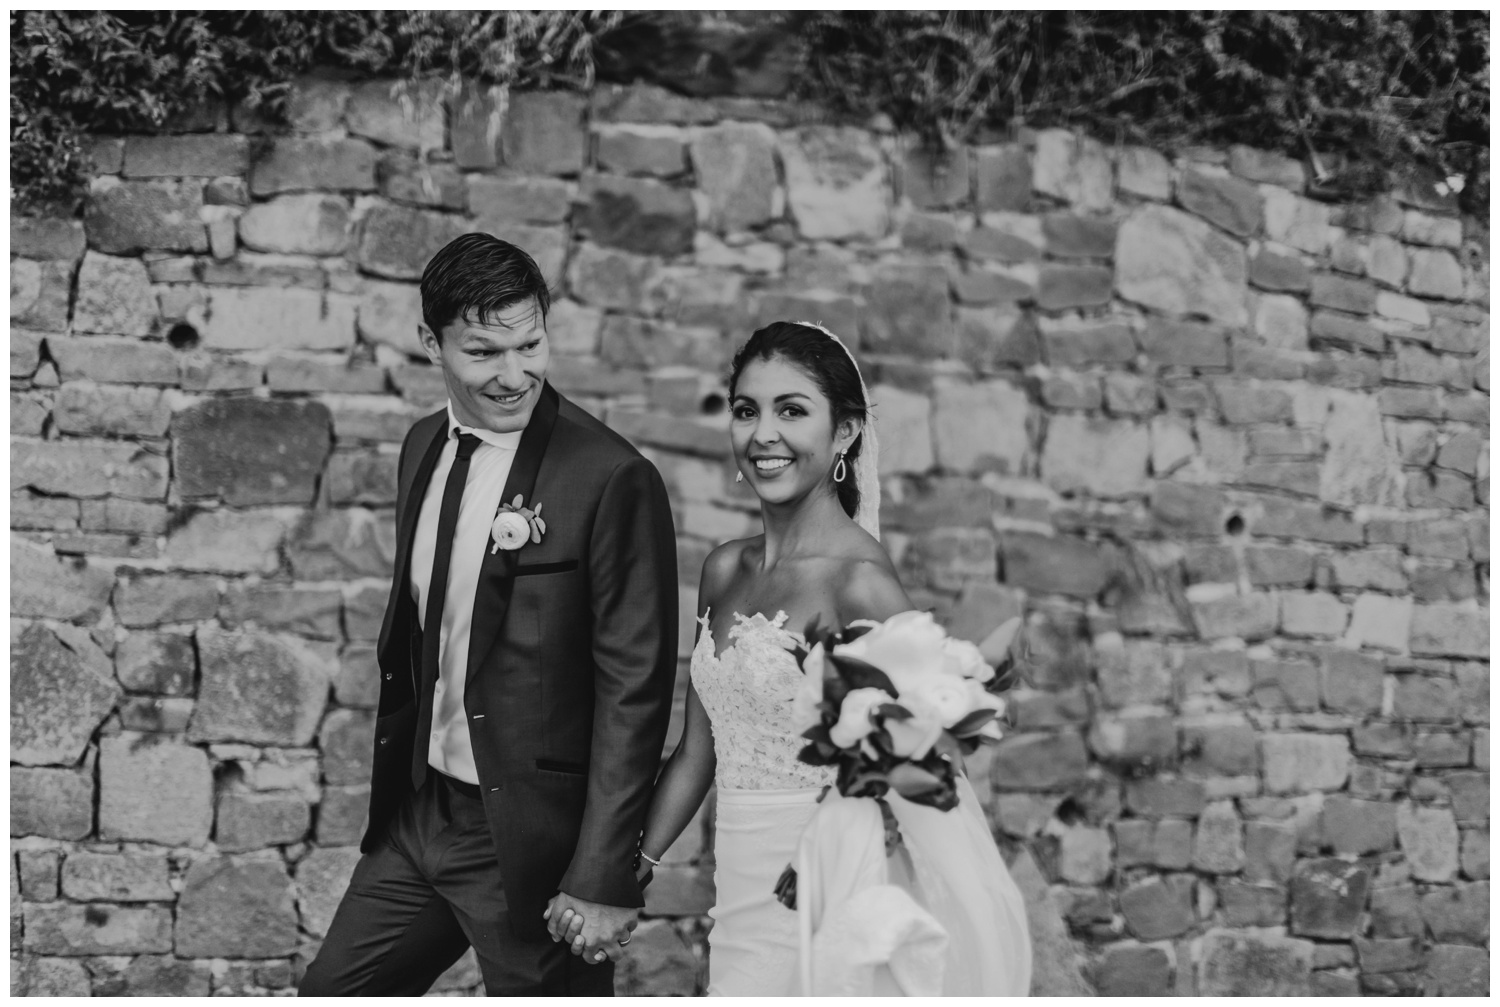 adriana_rivera_miranda_weddings_el_salvador_64.jpg